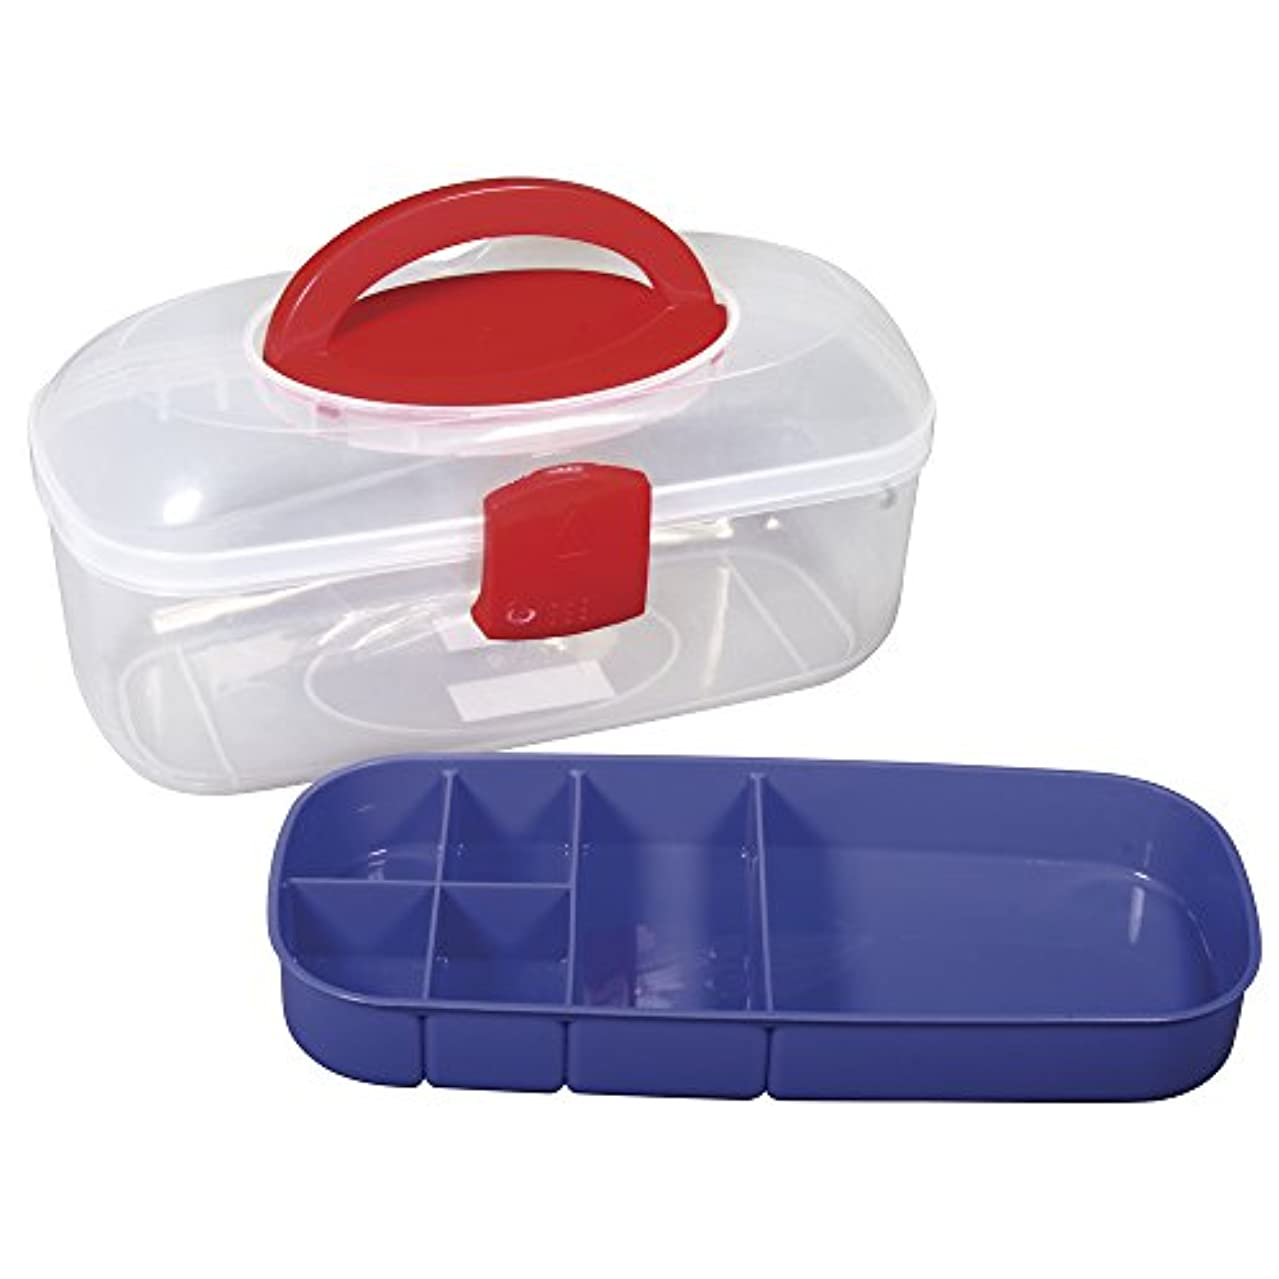 Rayher Sorting Box with Carry Handle Plus Inset, Plastic, Multi-Colour, 27.8 x 12.1 x 13.1 cm